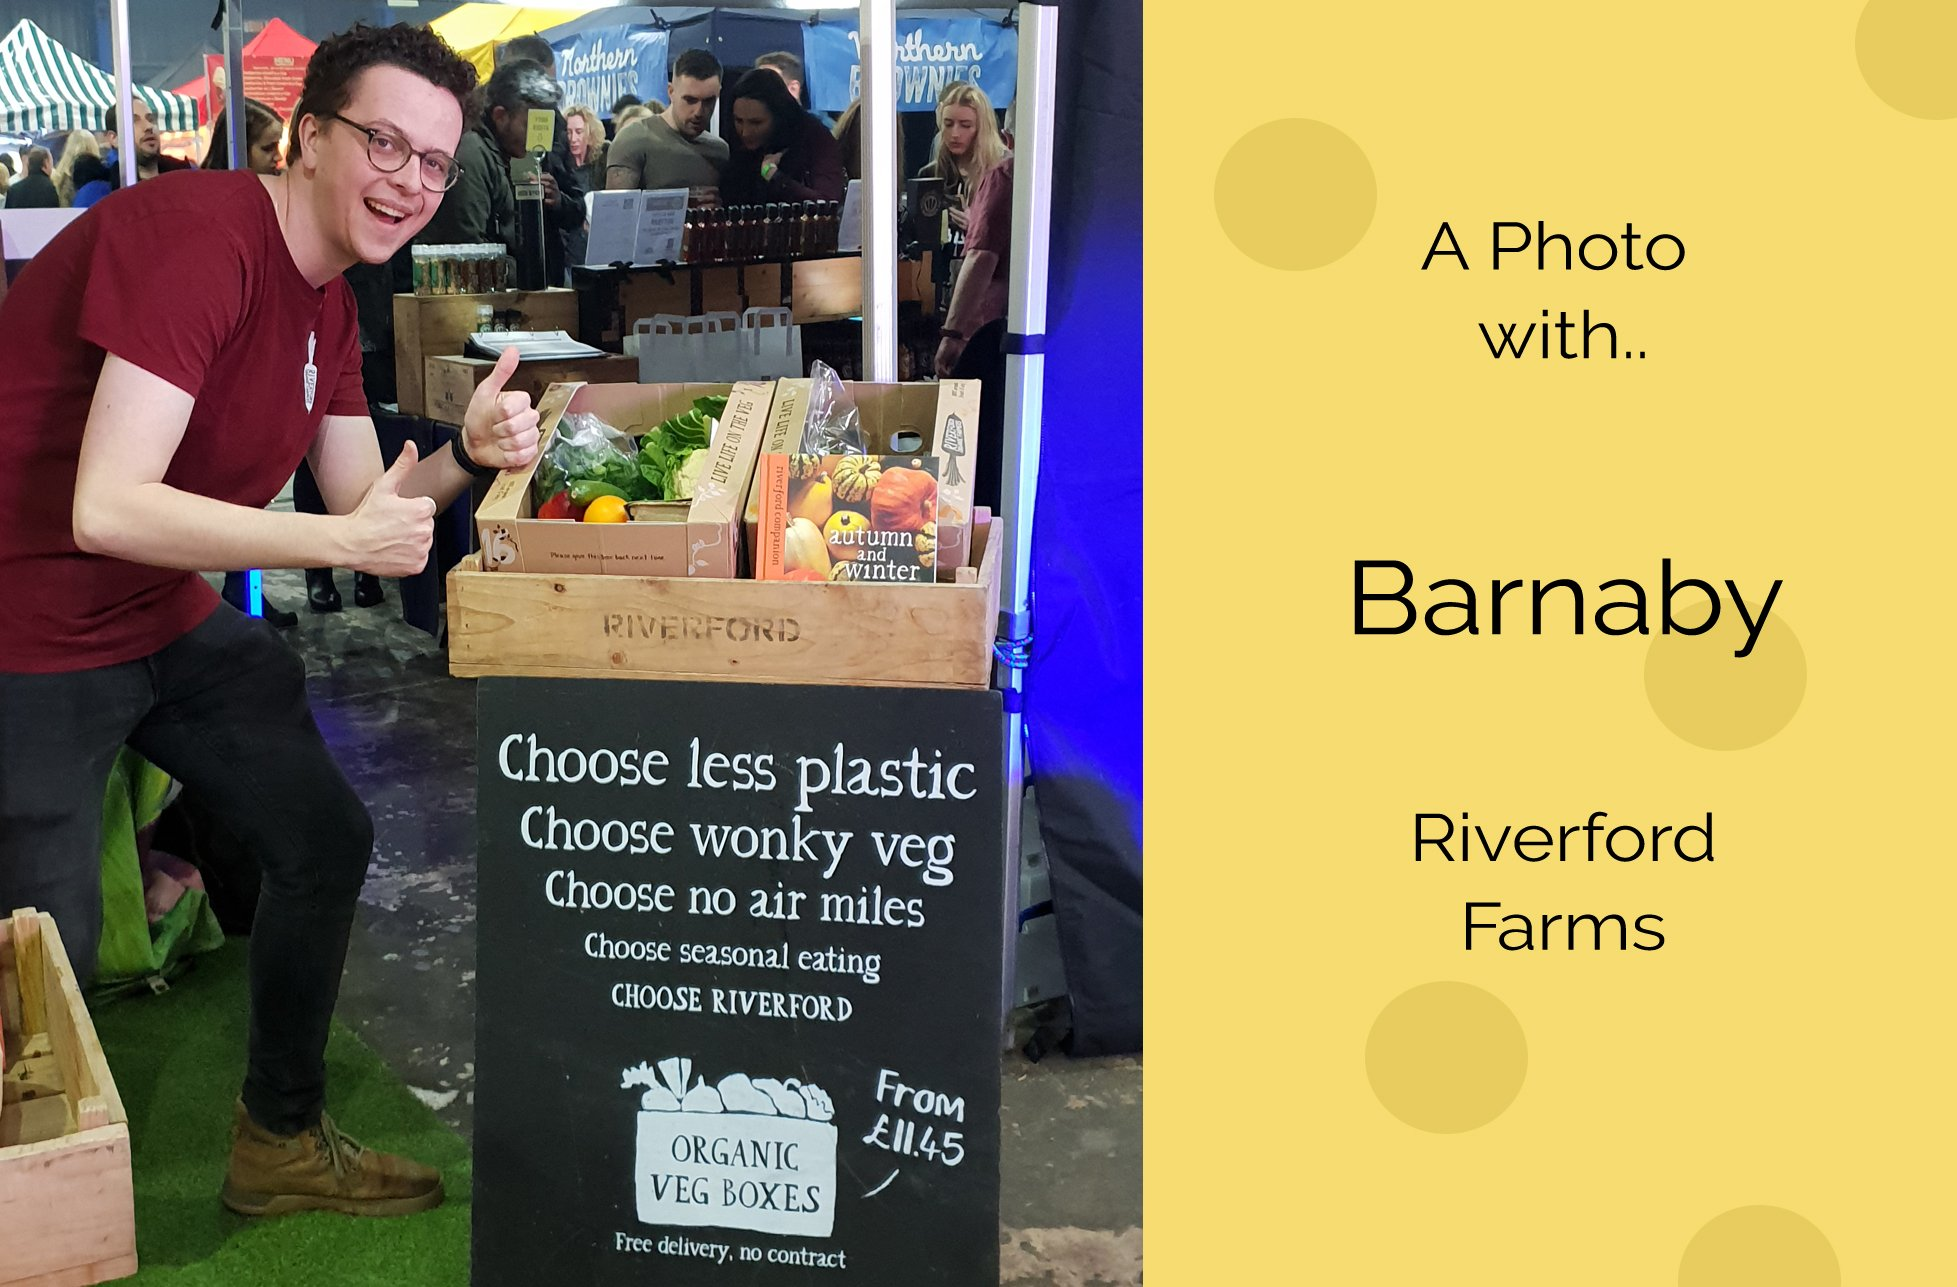 barnaby at Riverford Farms